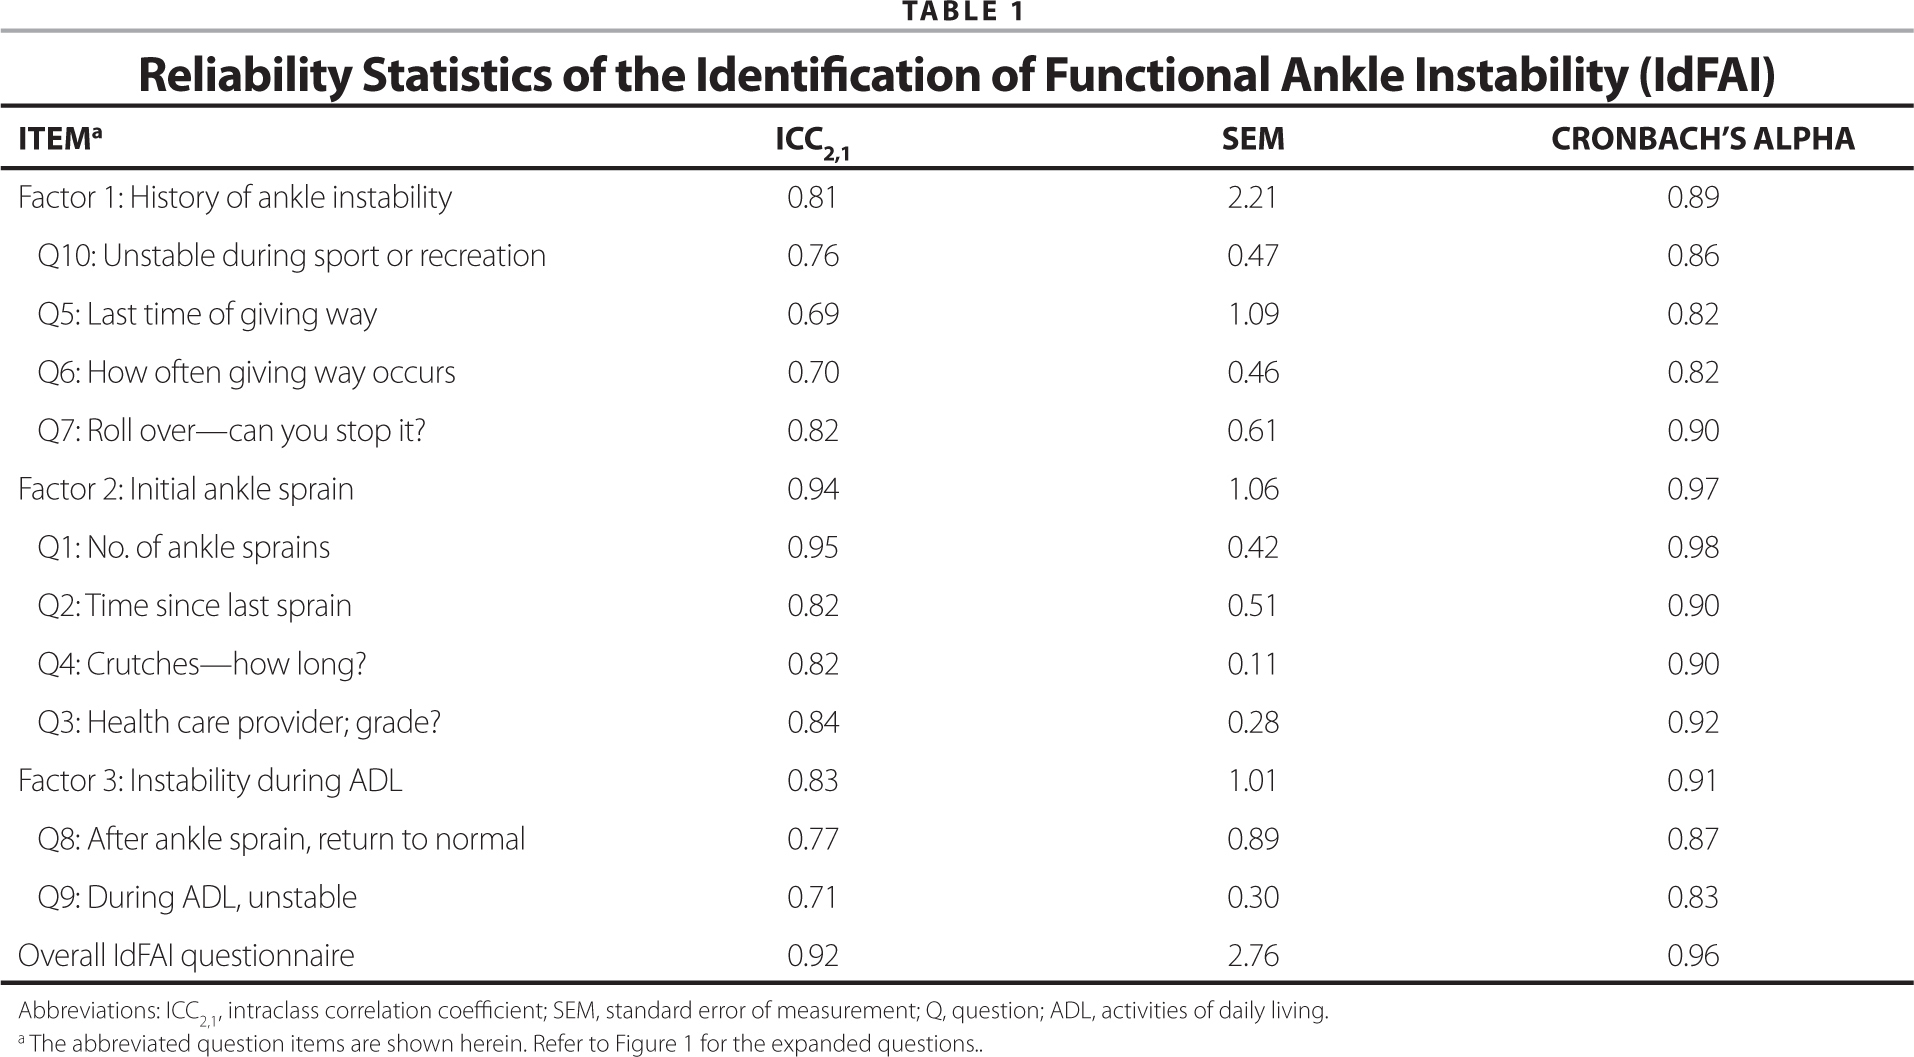 Reliability Statistics of the Identification of Functional Ankle Instability (IdFAI)